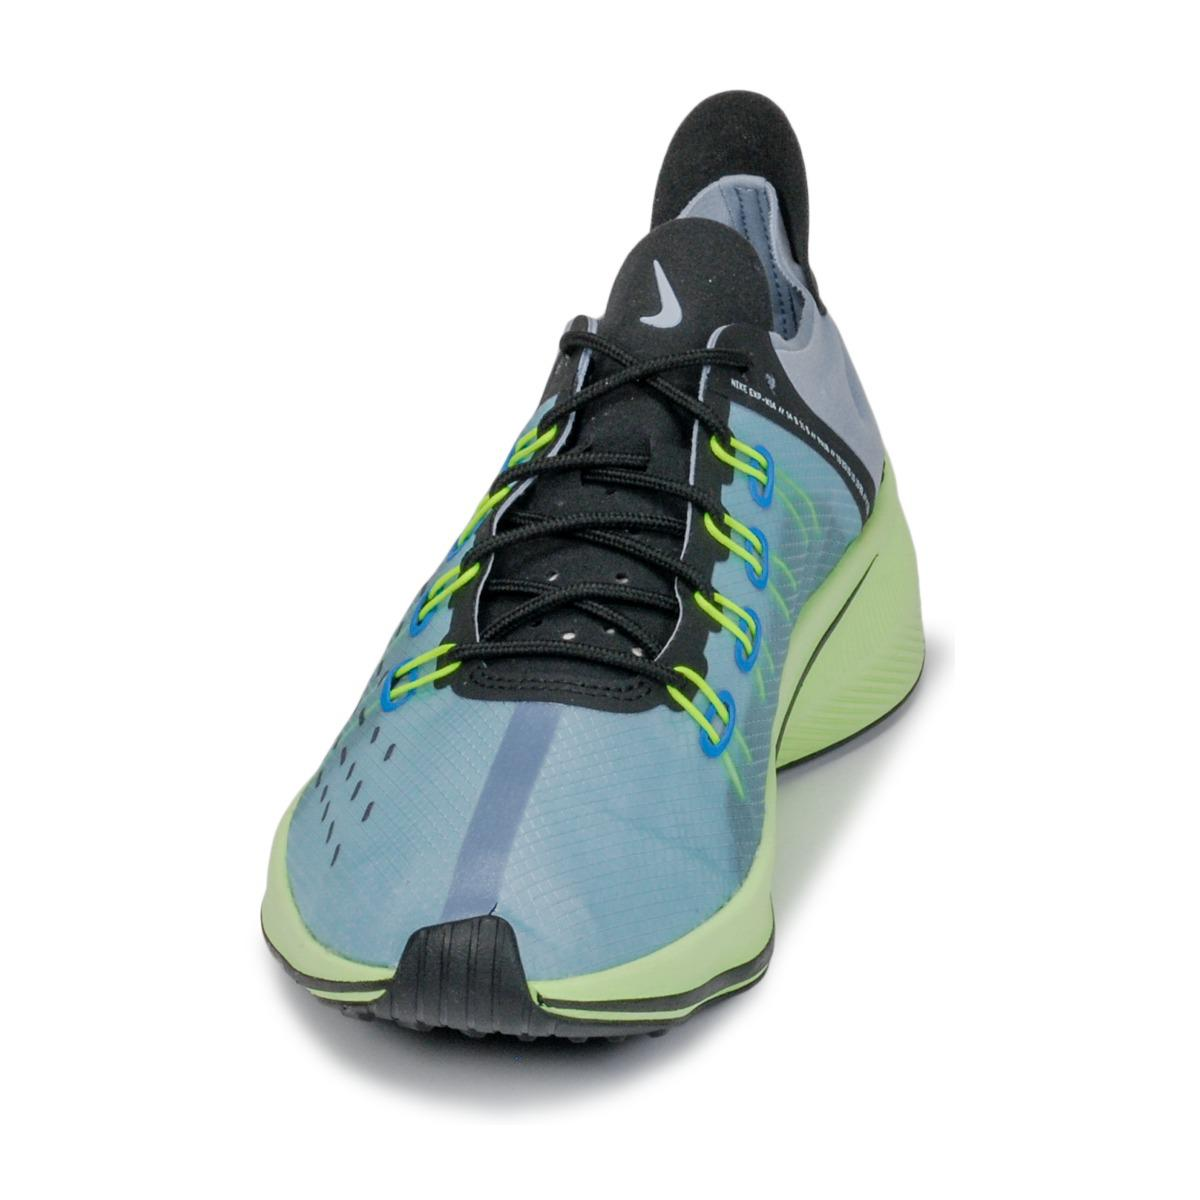 In Trainers Fast Shoes Men Nike Future Blue Racer For H2eIWED9Y